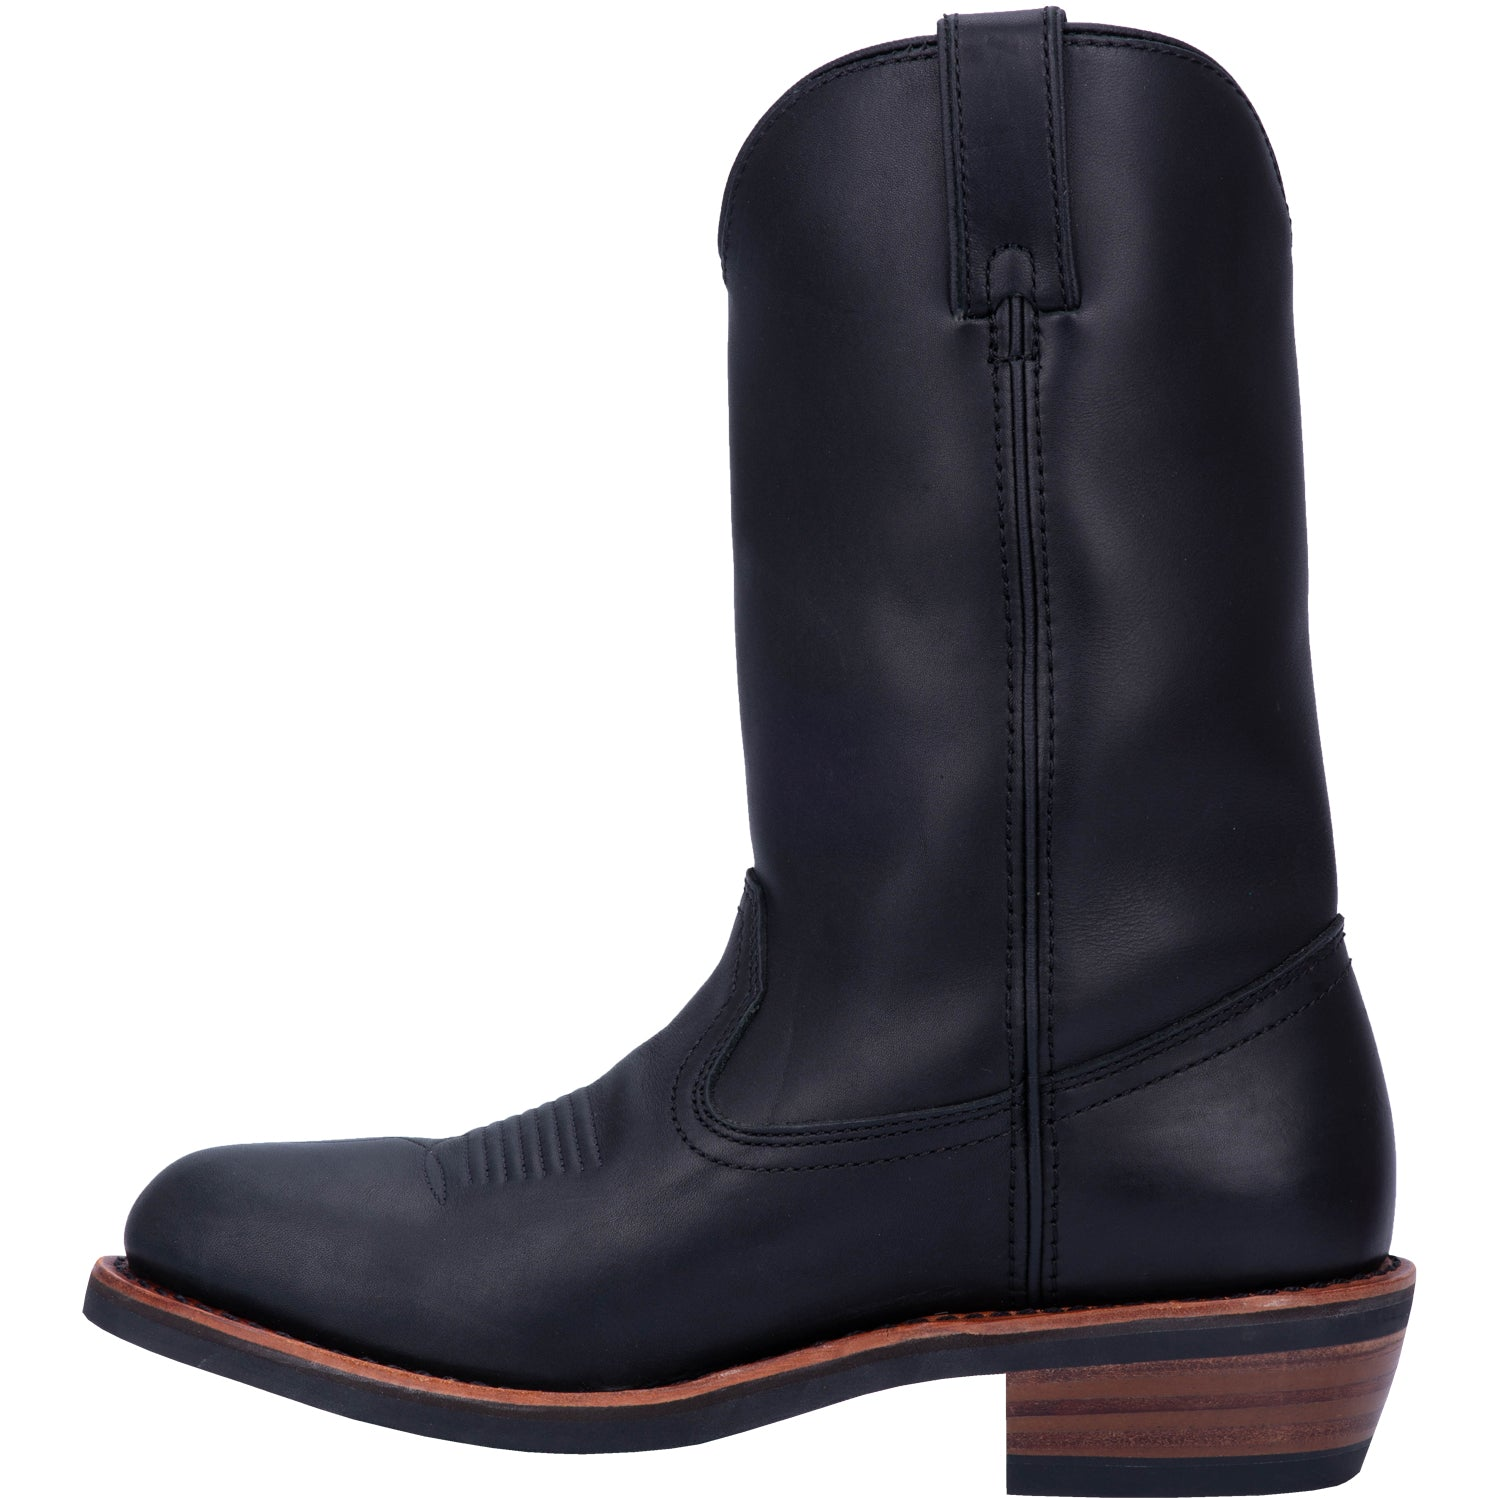 ALBUQUERQUE WATERPROOF LEATHER BOOT